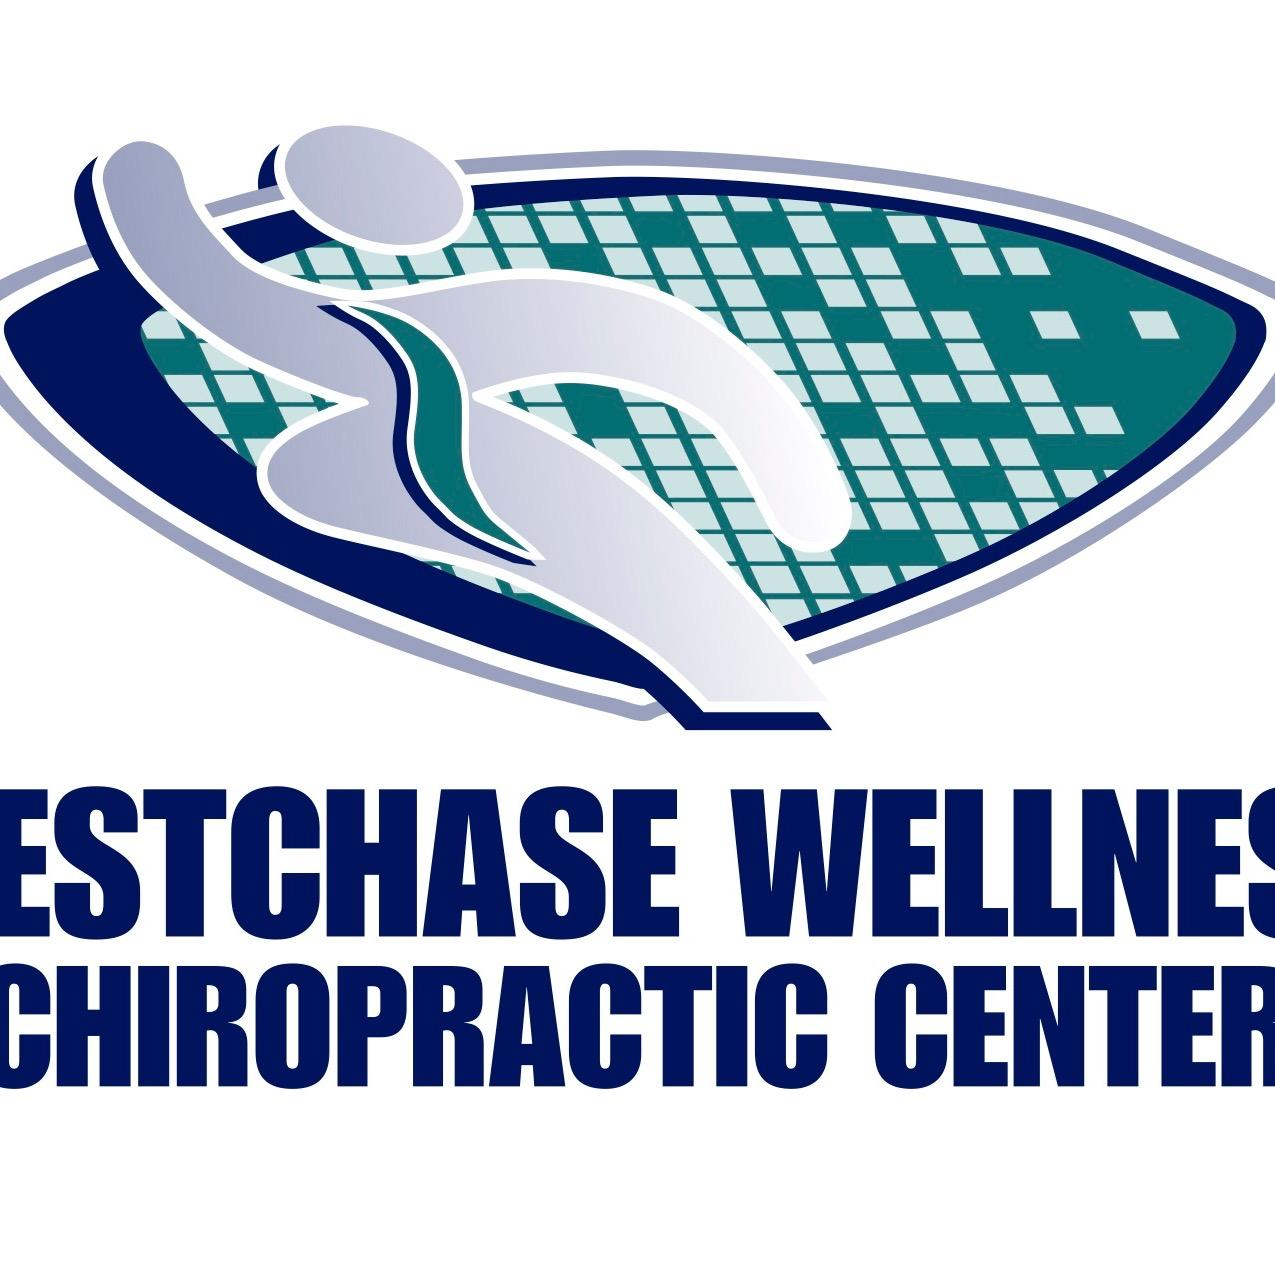 Westchase Wellness Chiropractic Center